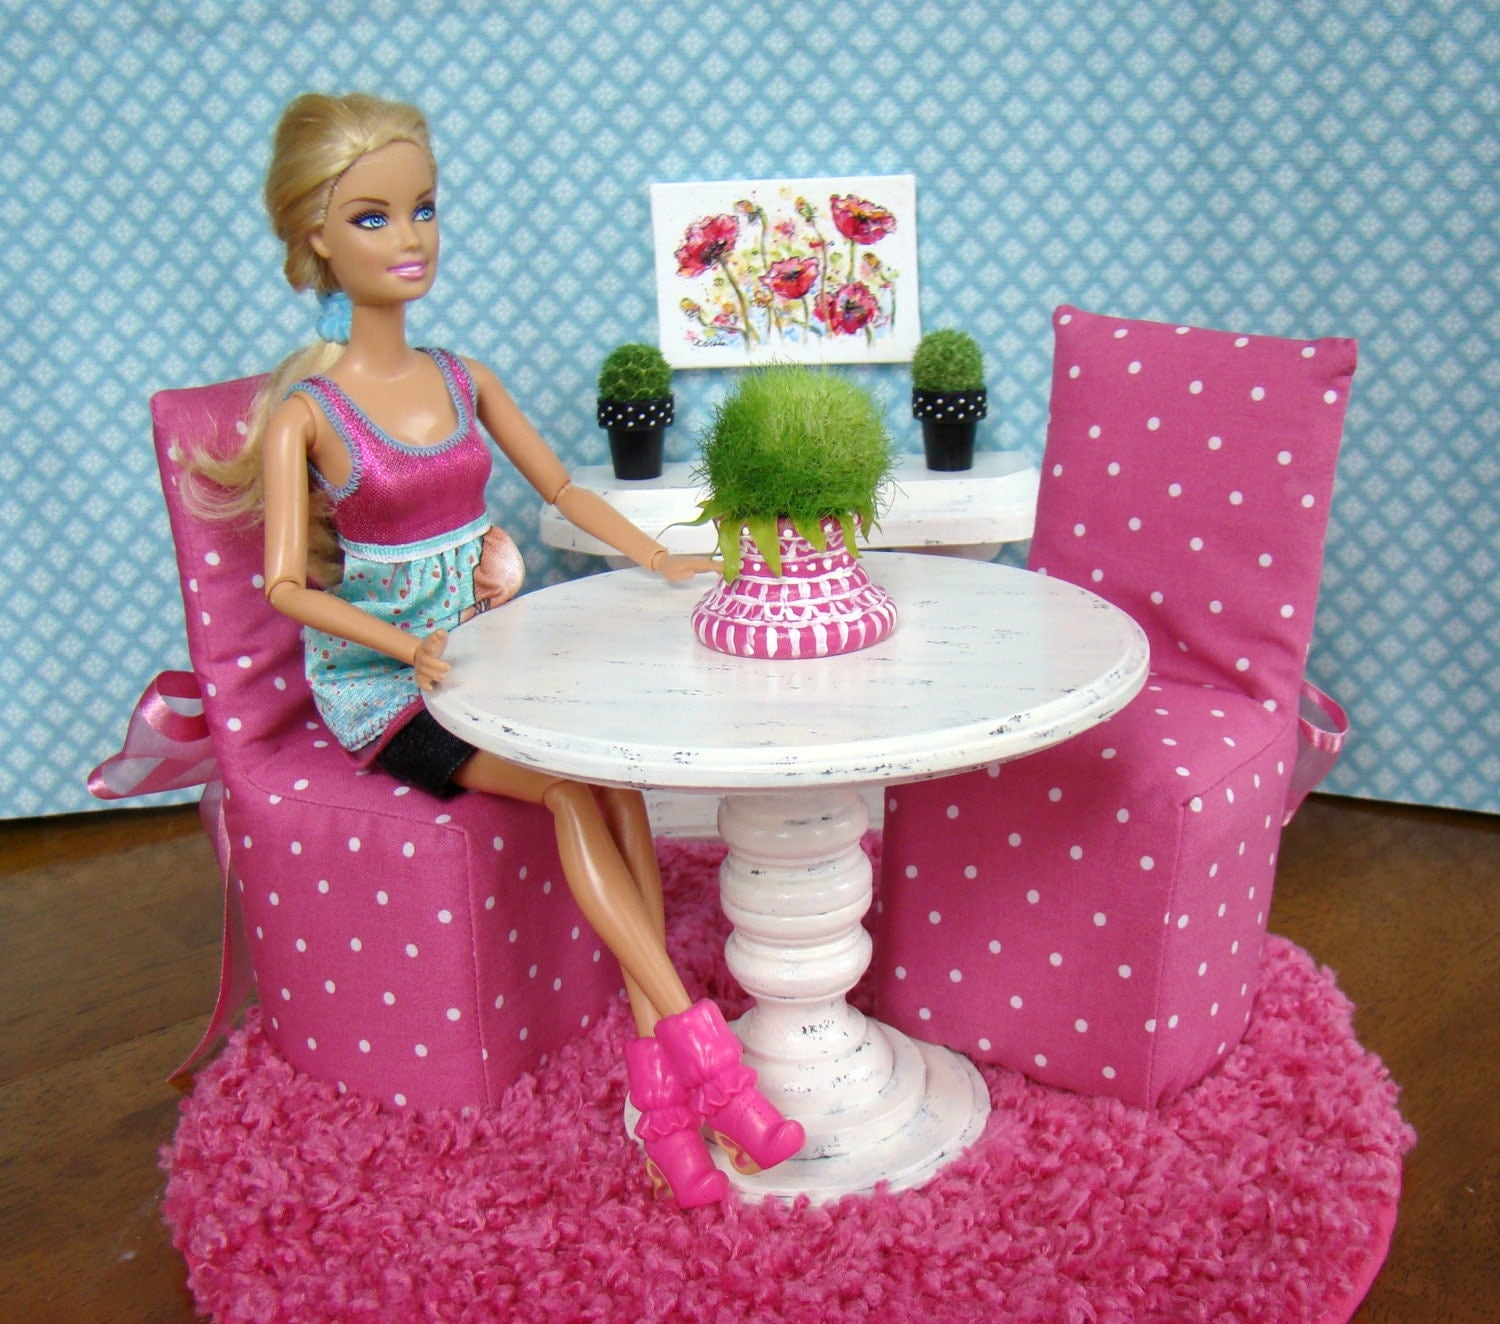 Barbie Furniture Dining Room Set with Pedestal Table 2 : ilfullxfull3846448885aqz from www.etsy.com size 1500 x 1324 jpeg 468kB